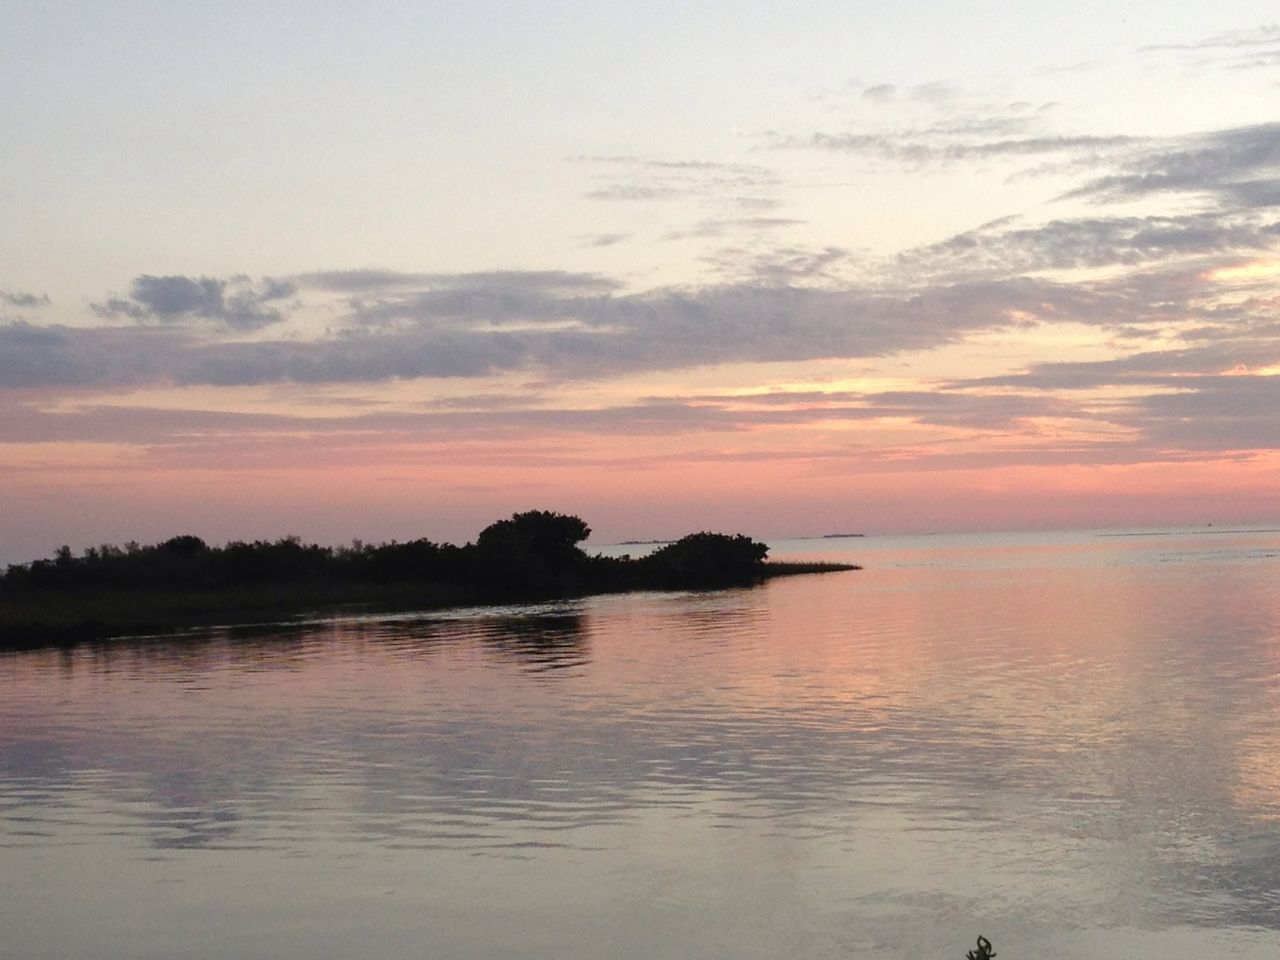 sunset, reflection, water, nature, scenics, beauty in nature, sky, tranquility, no people, silhouette, landscape, outdoors, tree, sea